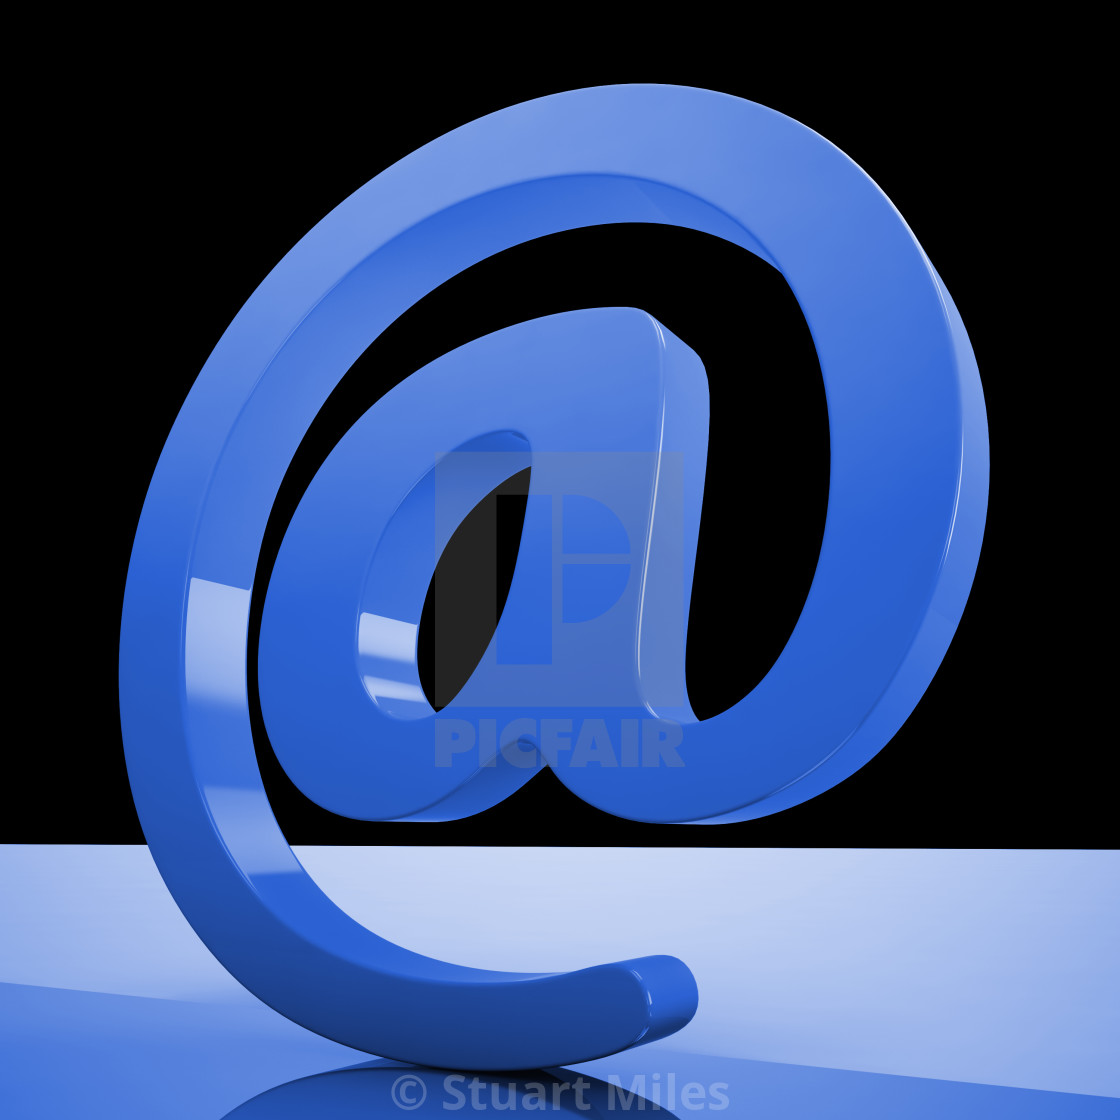 """At Sign Mean Email Correspondence on Web"" stock image"